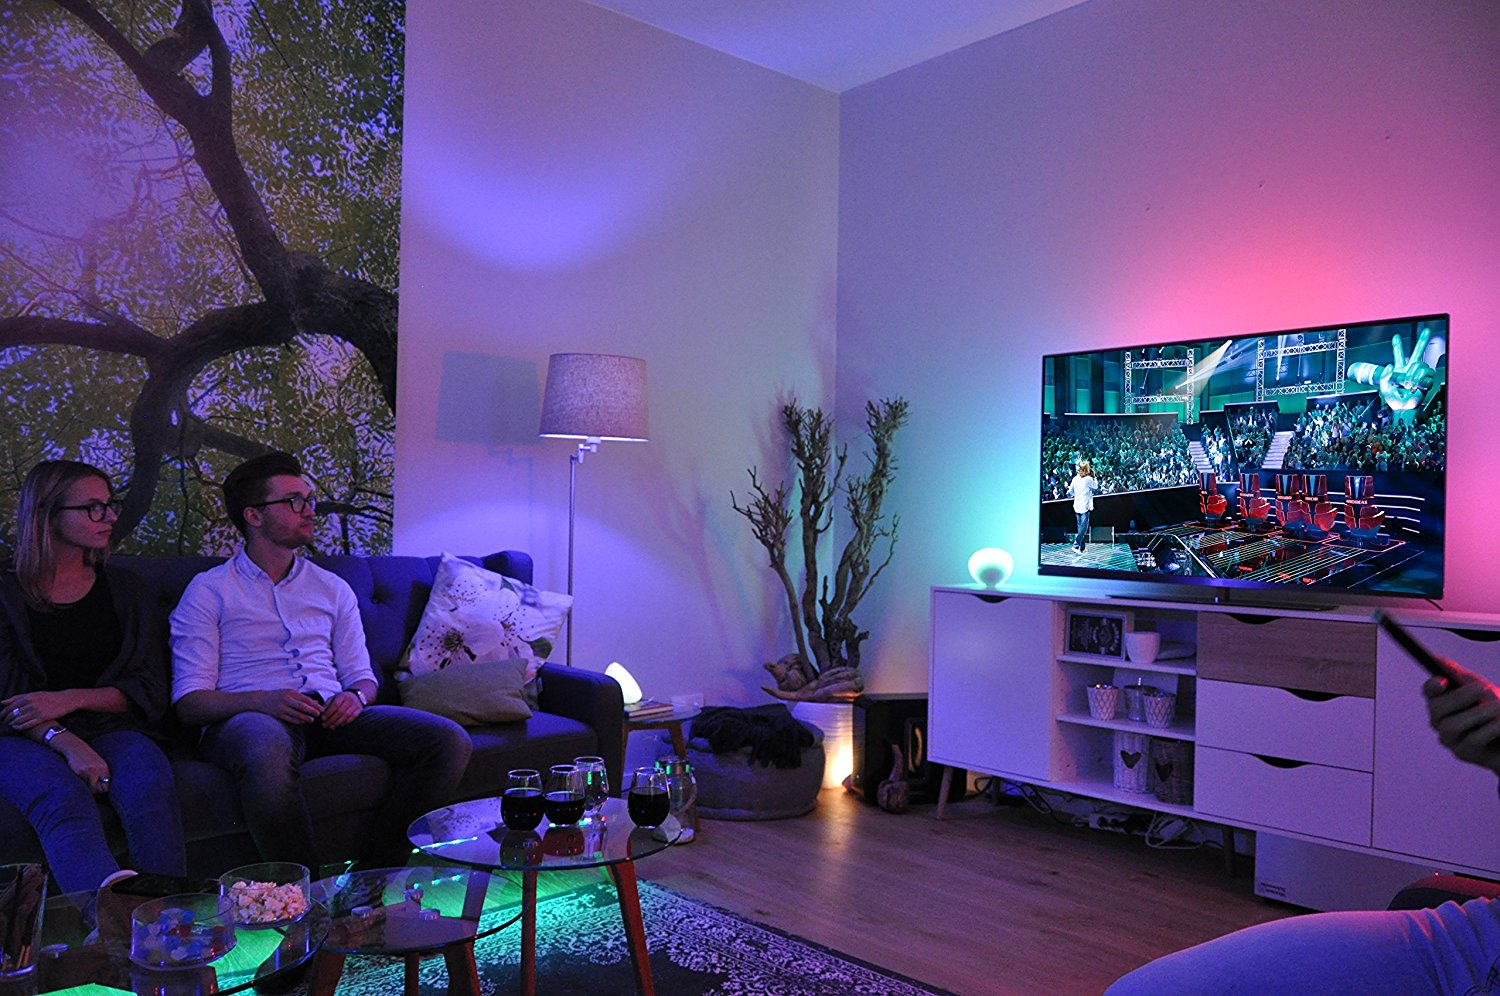 Hue G10 Philips Hue Lighting A Beginners Guide Kip Hakes